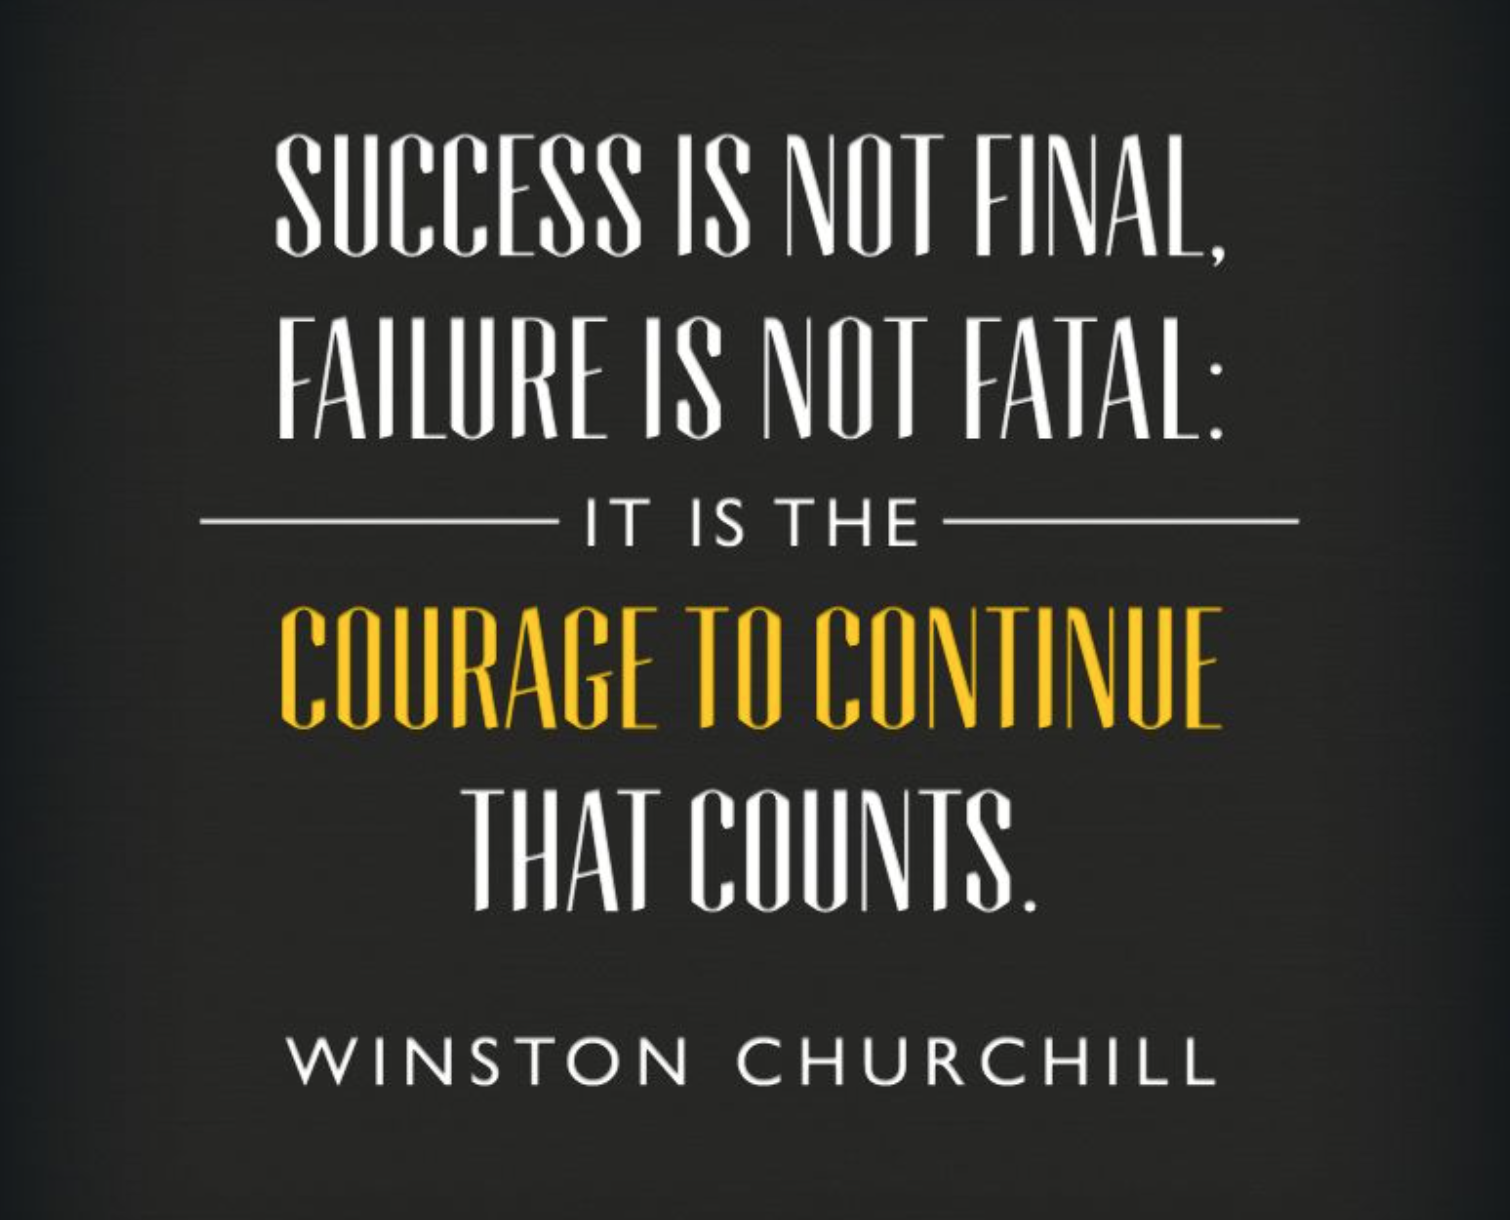 [Image] Success is not final, failure is not fatal: it is the courage to continue that counts.